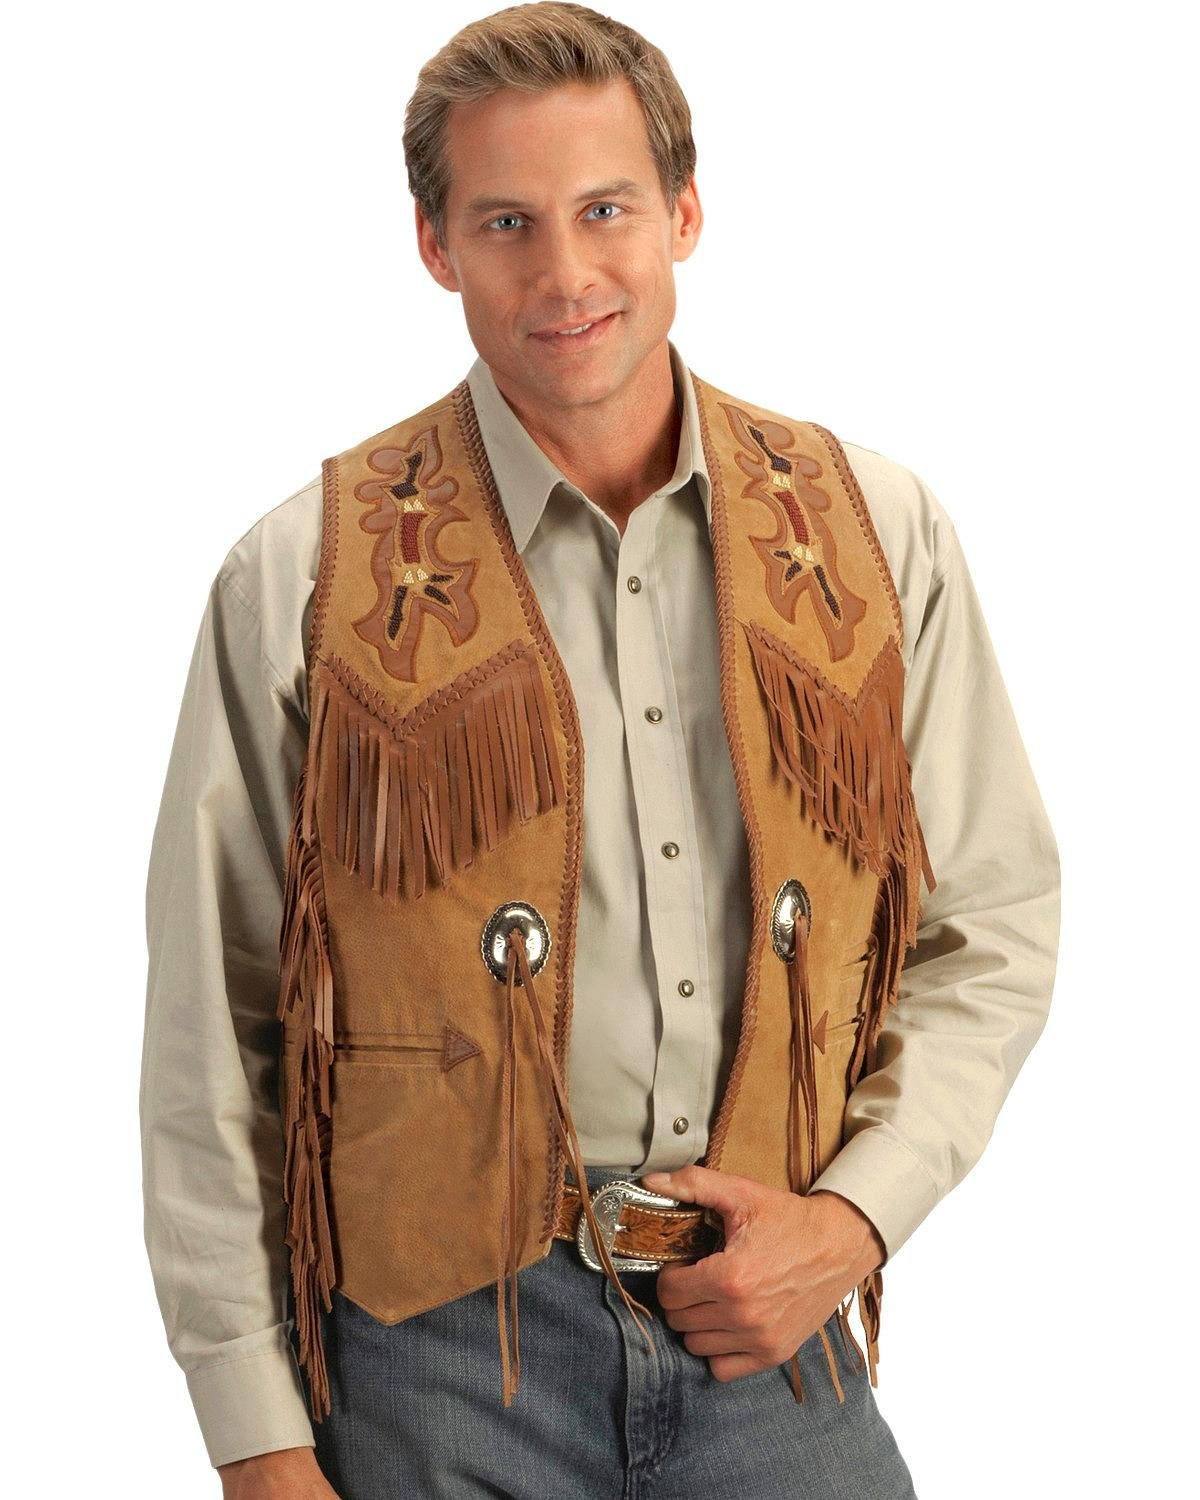 Scully Men's Beaded Boar Suede Leather Vest Tan 44 R